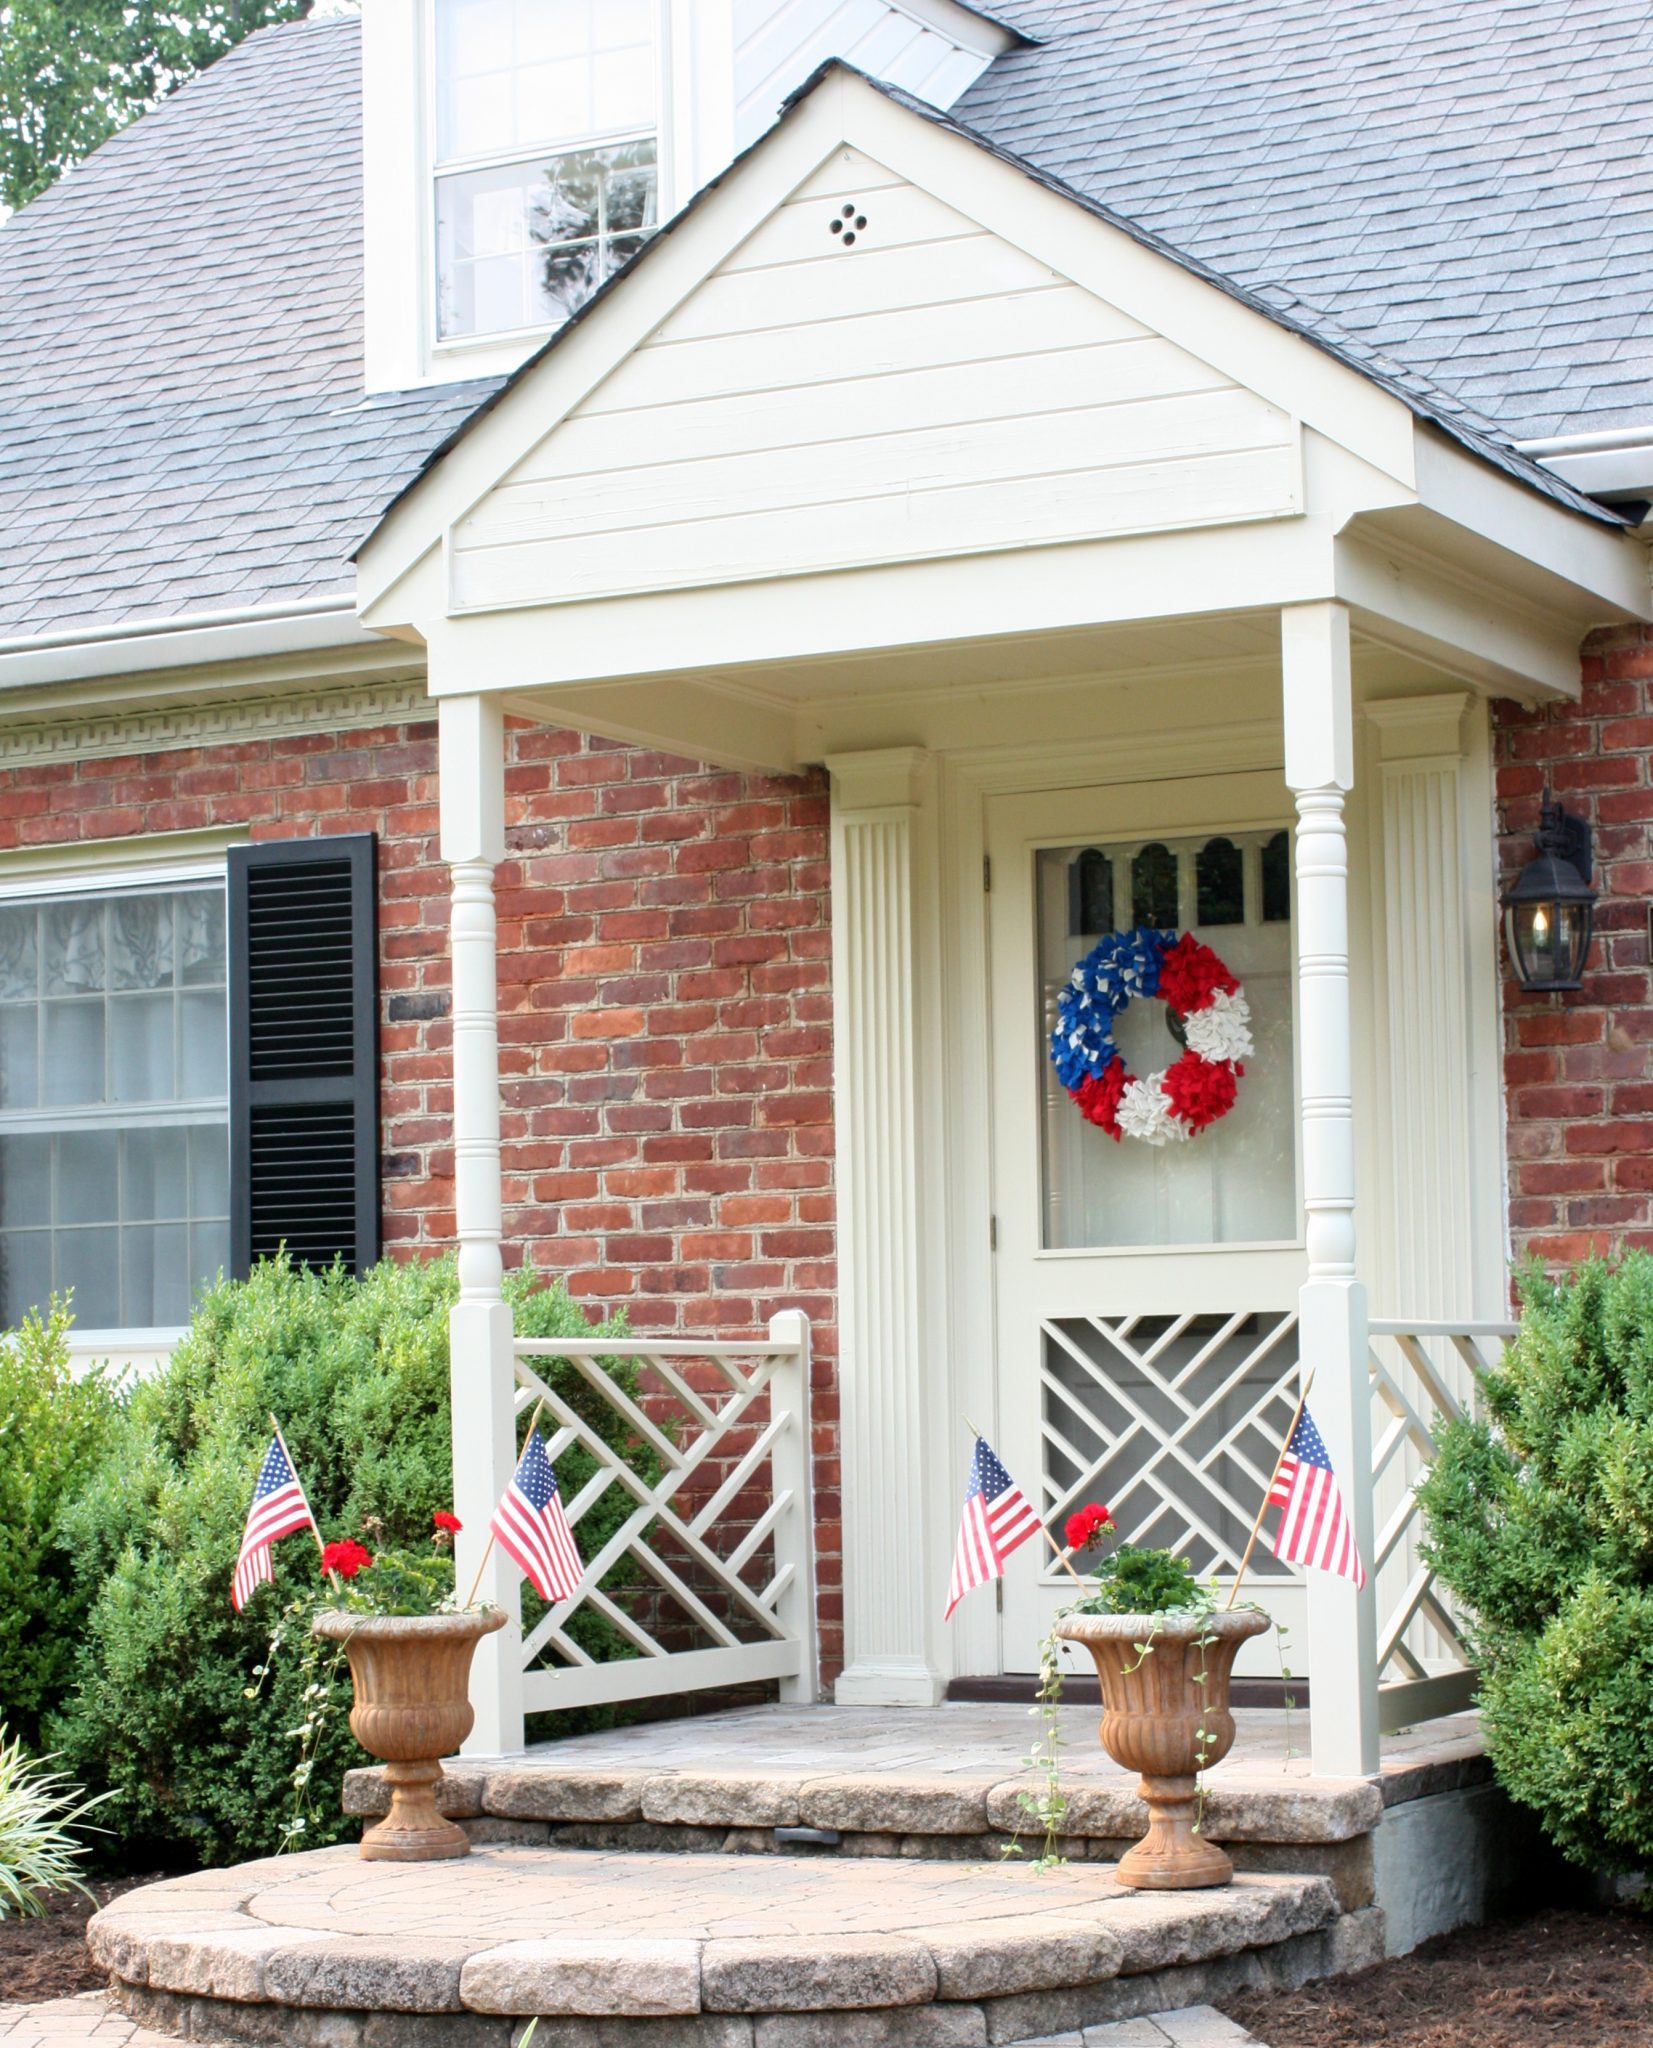 Front porch decorated with a red, white, and blue wreath and flags in flower pots.